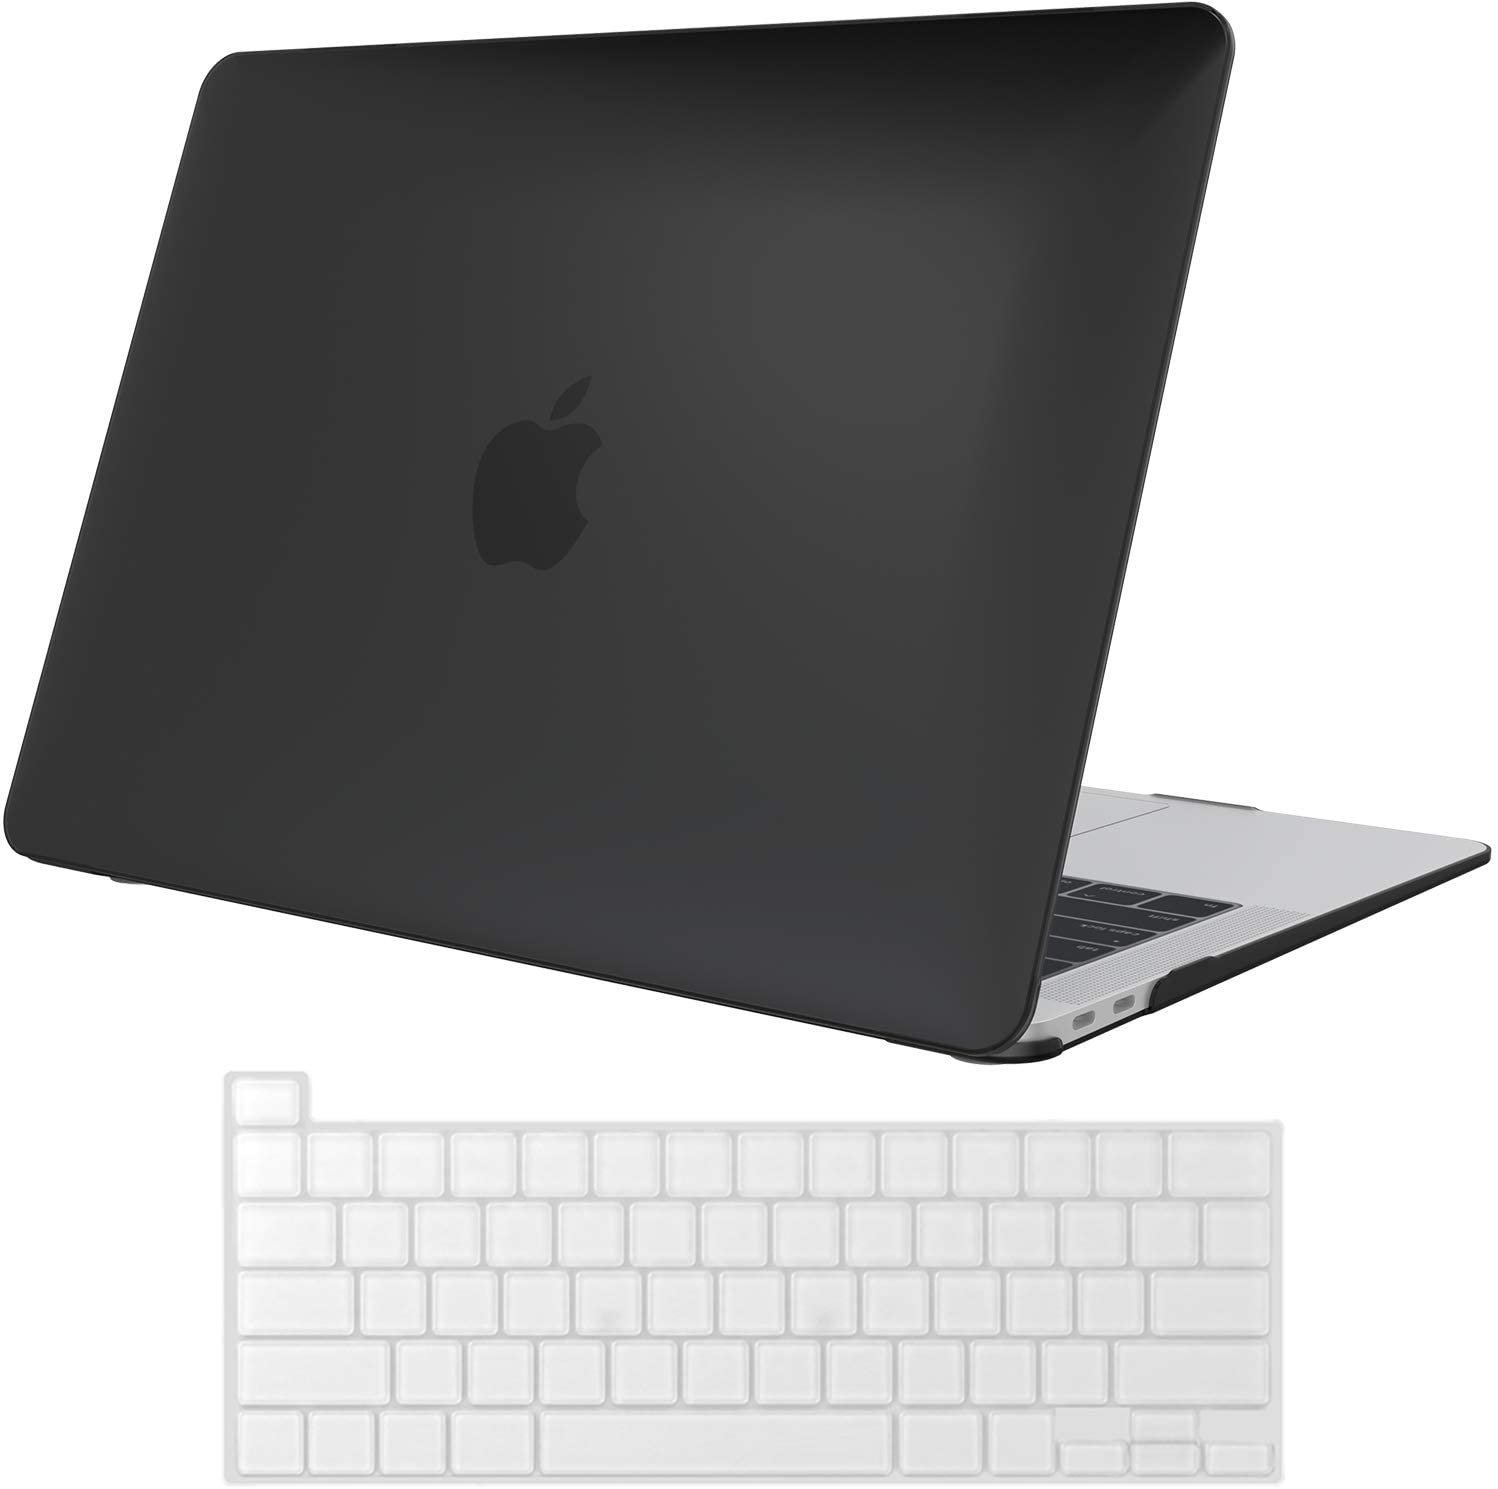 ProCase MacBook Pro 13 Case 2020 Release A2289 A2251, Hard Case Shell Cover and Keyboard Skin Cover for New MacBook Pro 13 Inch Model A2289 A2251 - Black